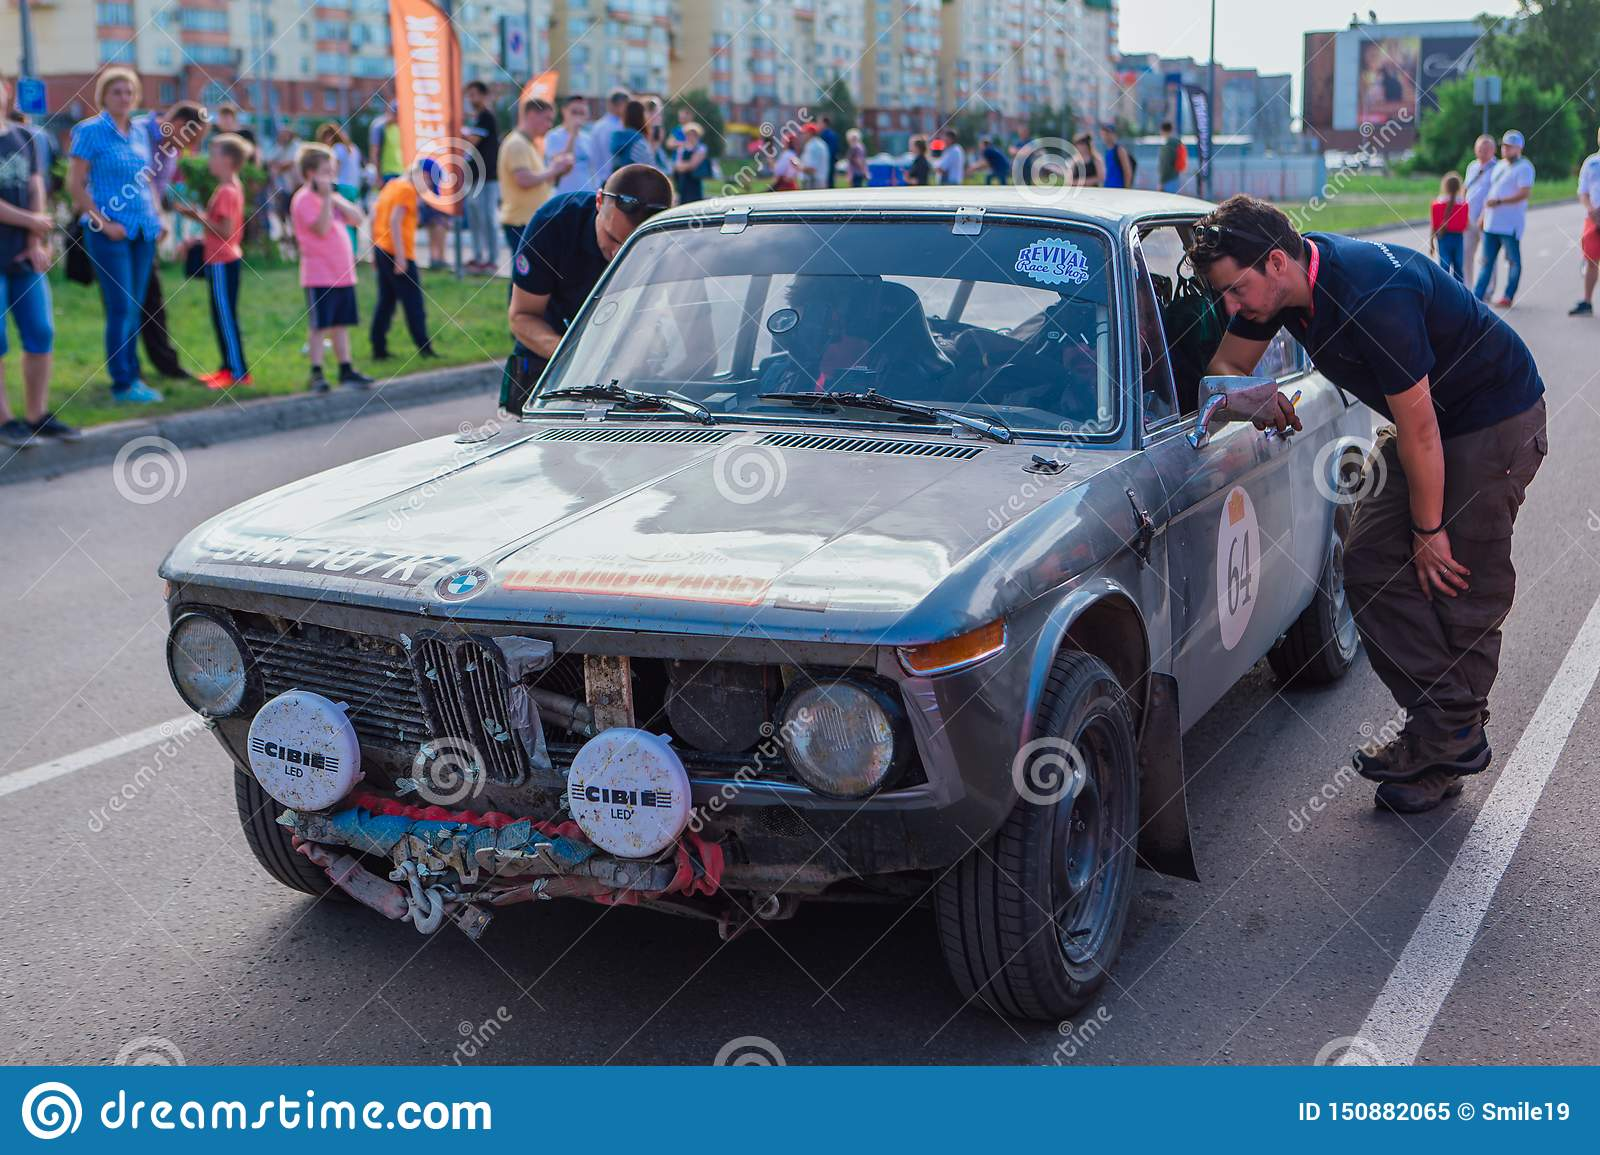 Novokuznetsk Russia June 14 2019 The 7th Peking To Paris Motor Challenge 2019 Bmw 2002 Ti 1971 Leaving The City And Going To Editorial Image Image Of Machine Auto 150882065